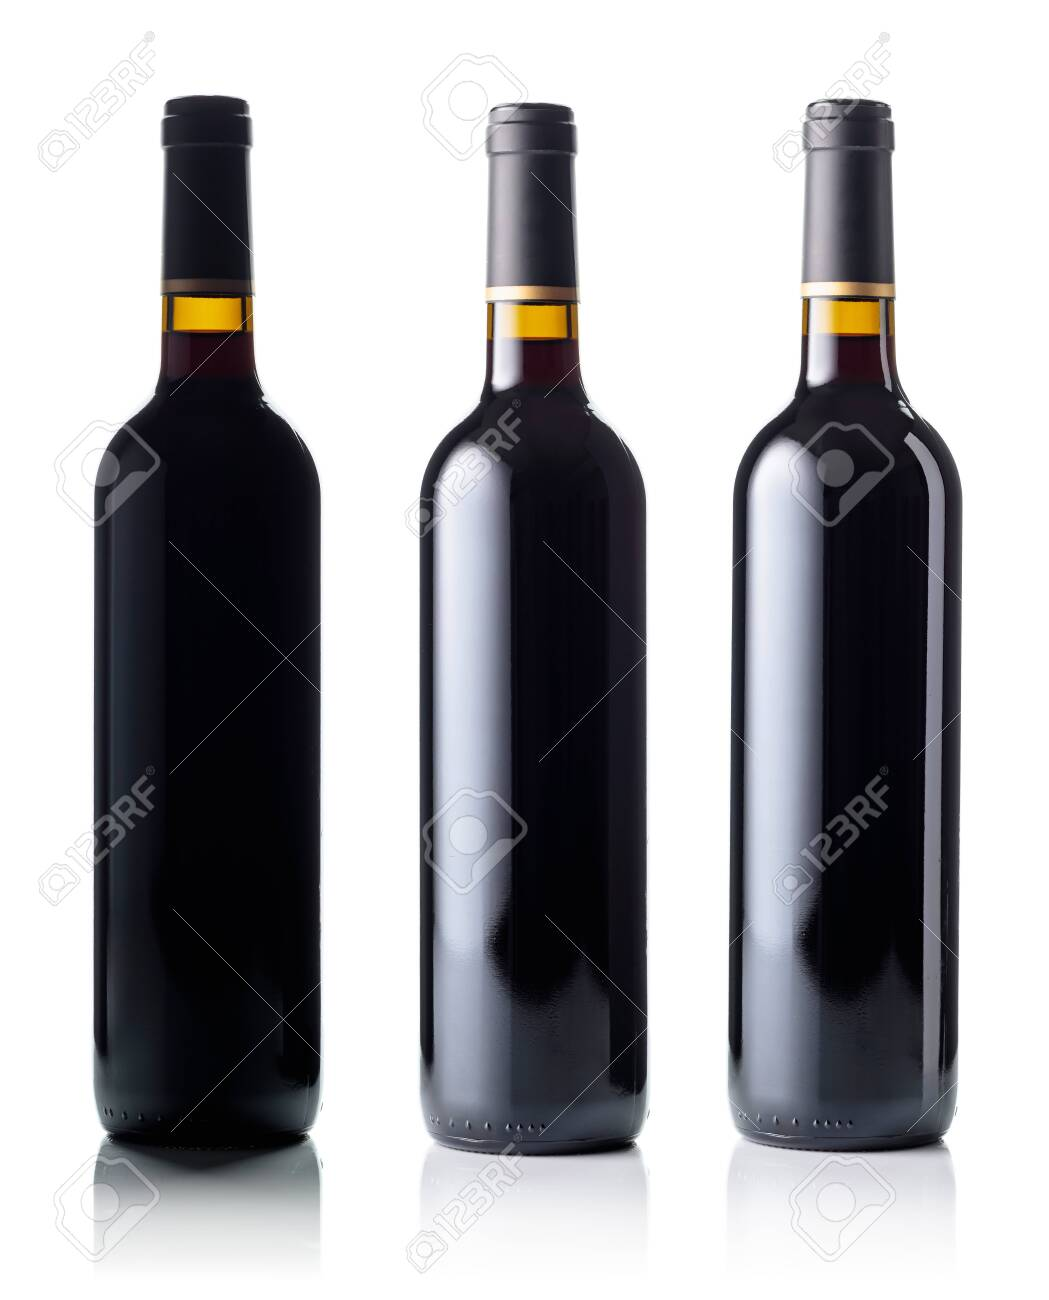 Red wine bottle isolated on white background. - 138829990